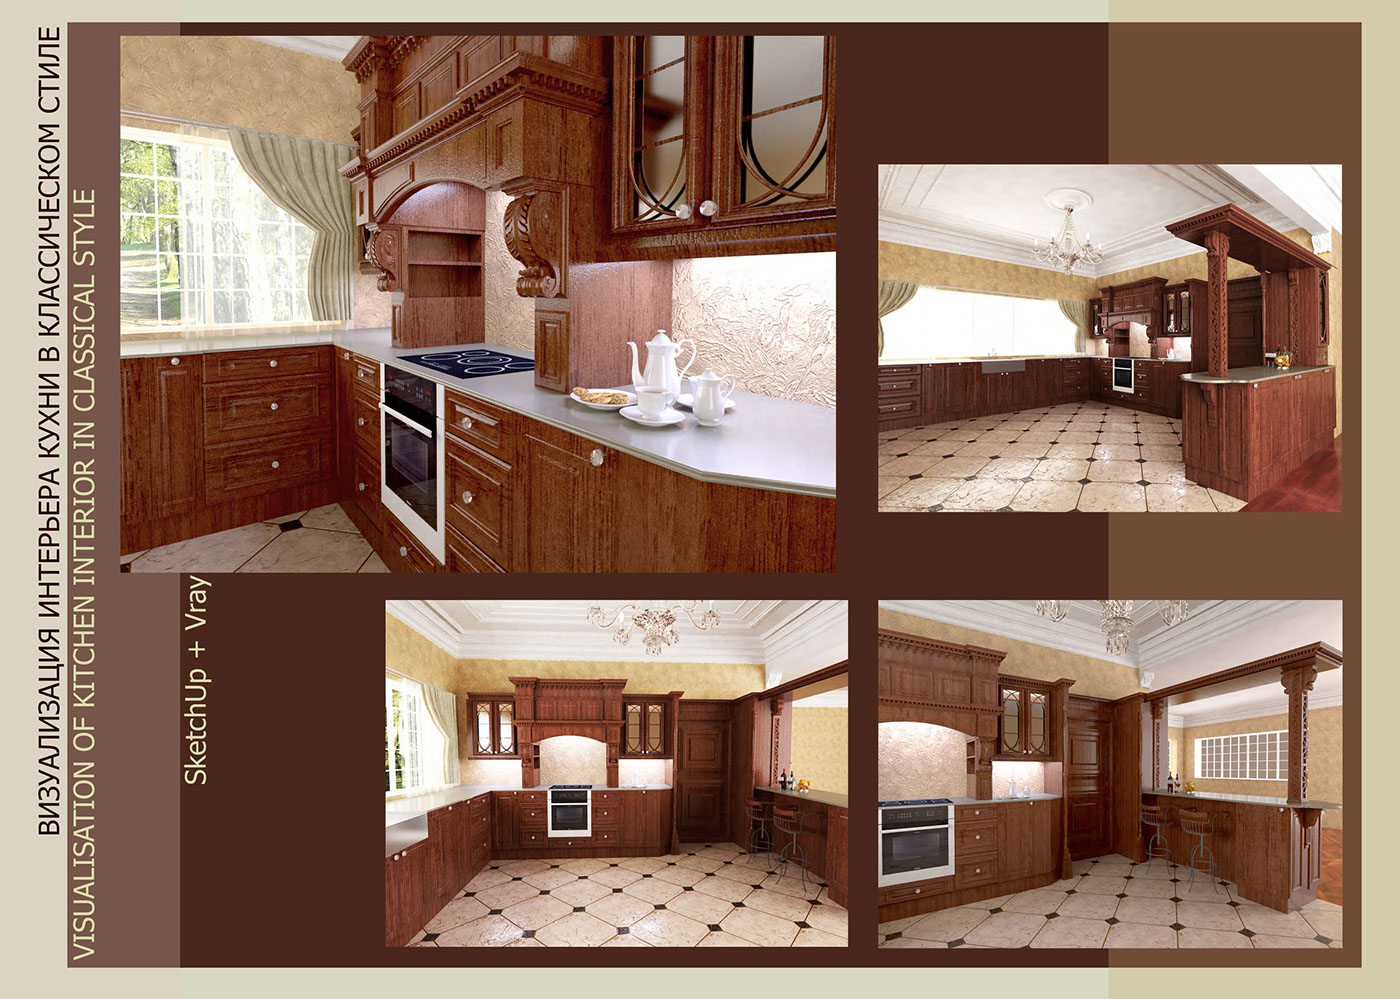 Visualisation of the kitchen sketchup vray on behance for Kitchen design using sketchup